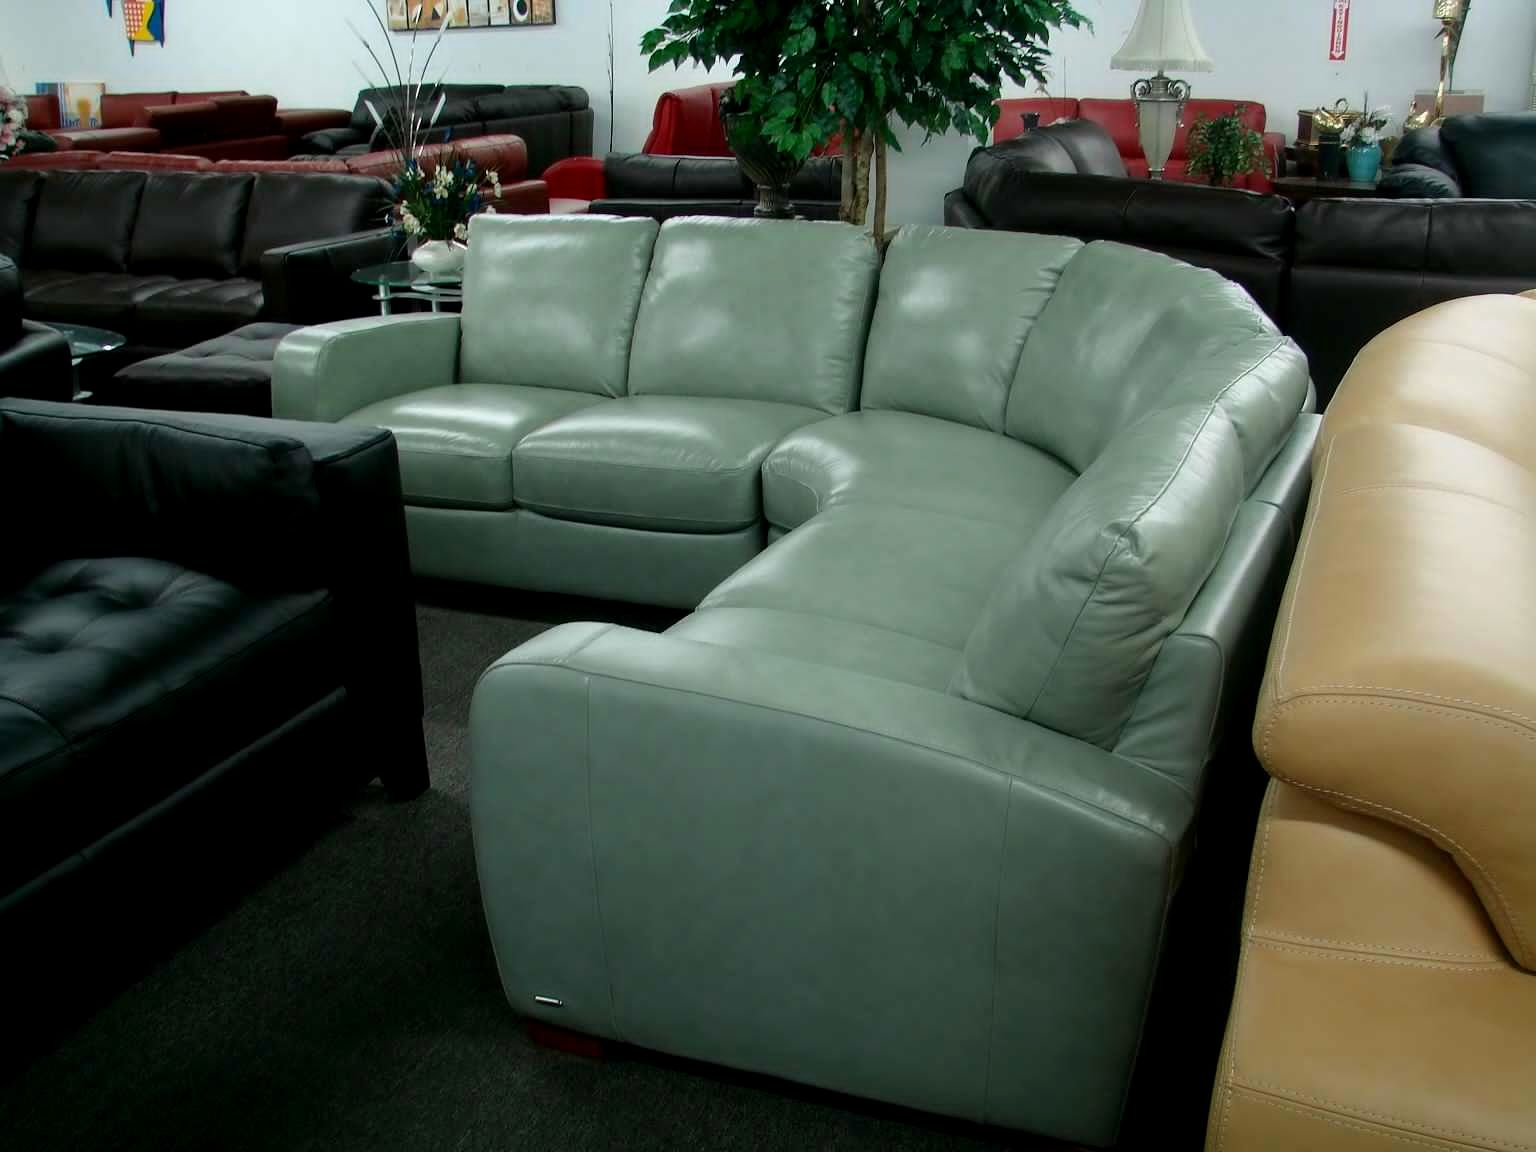 cute sectional recliner sofa photo-Amazing Sectional Recliner sofa Architecture